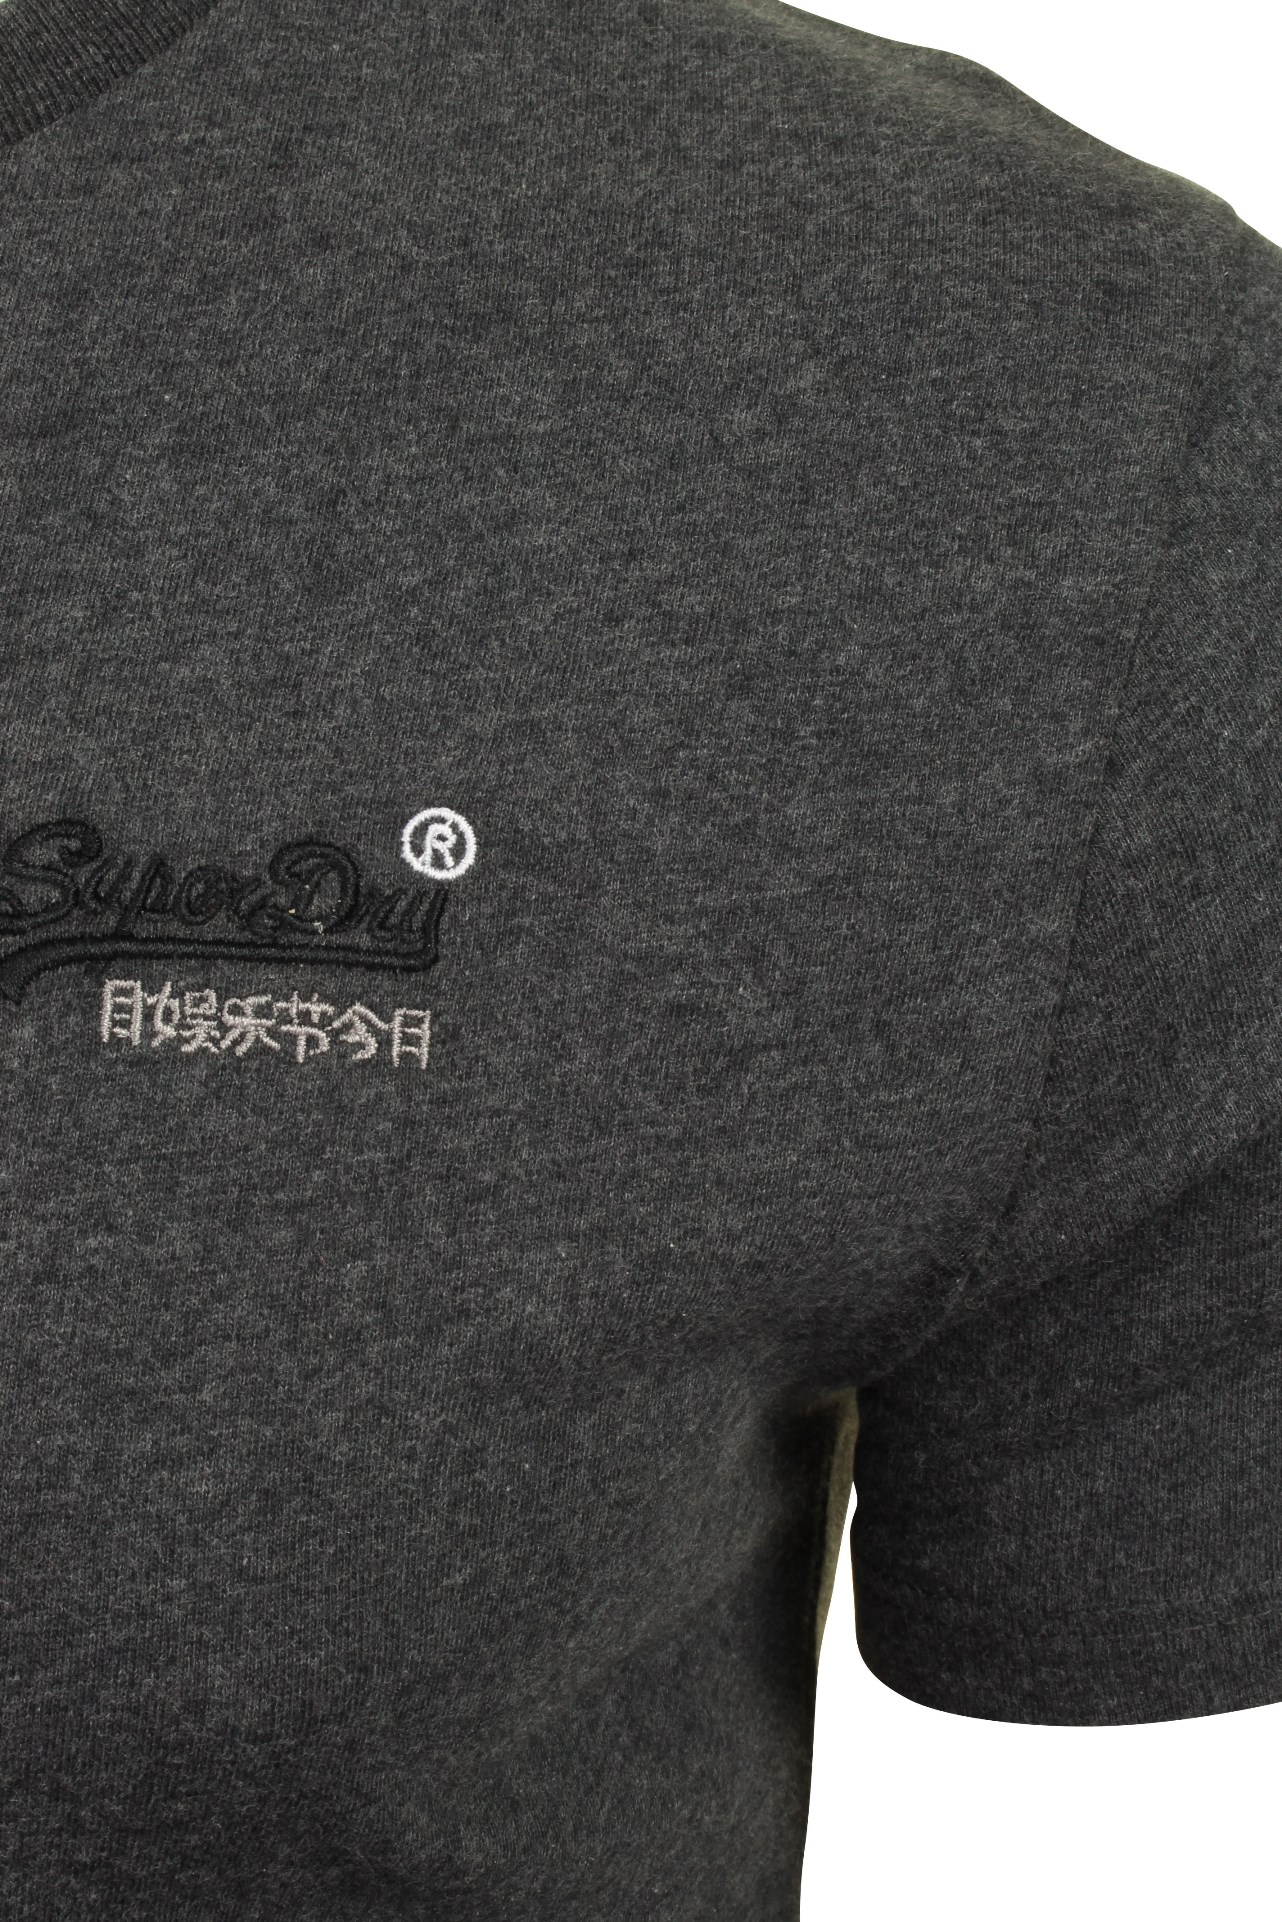 Superdry-Mens-T-Shirt-039-OL-Vintage-Embroidery-Tee-039-Short-Sleeved thumbnail 13